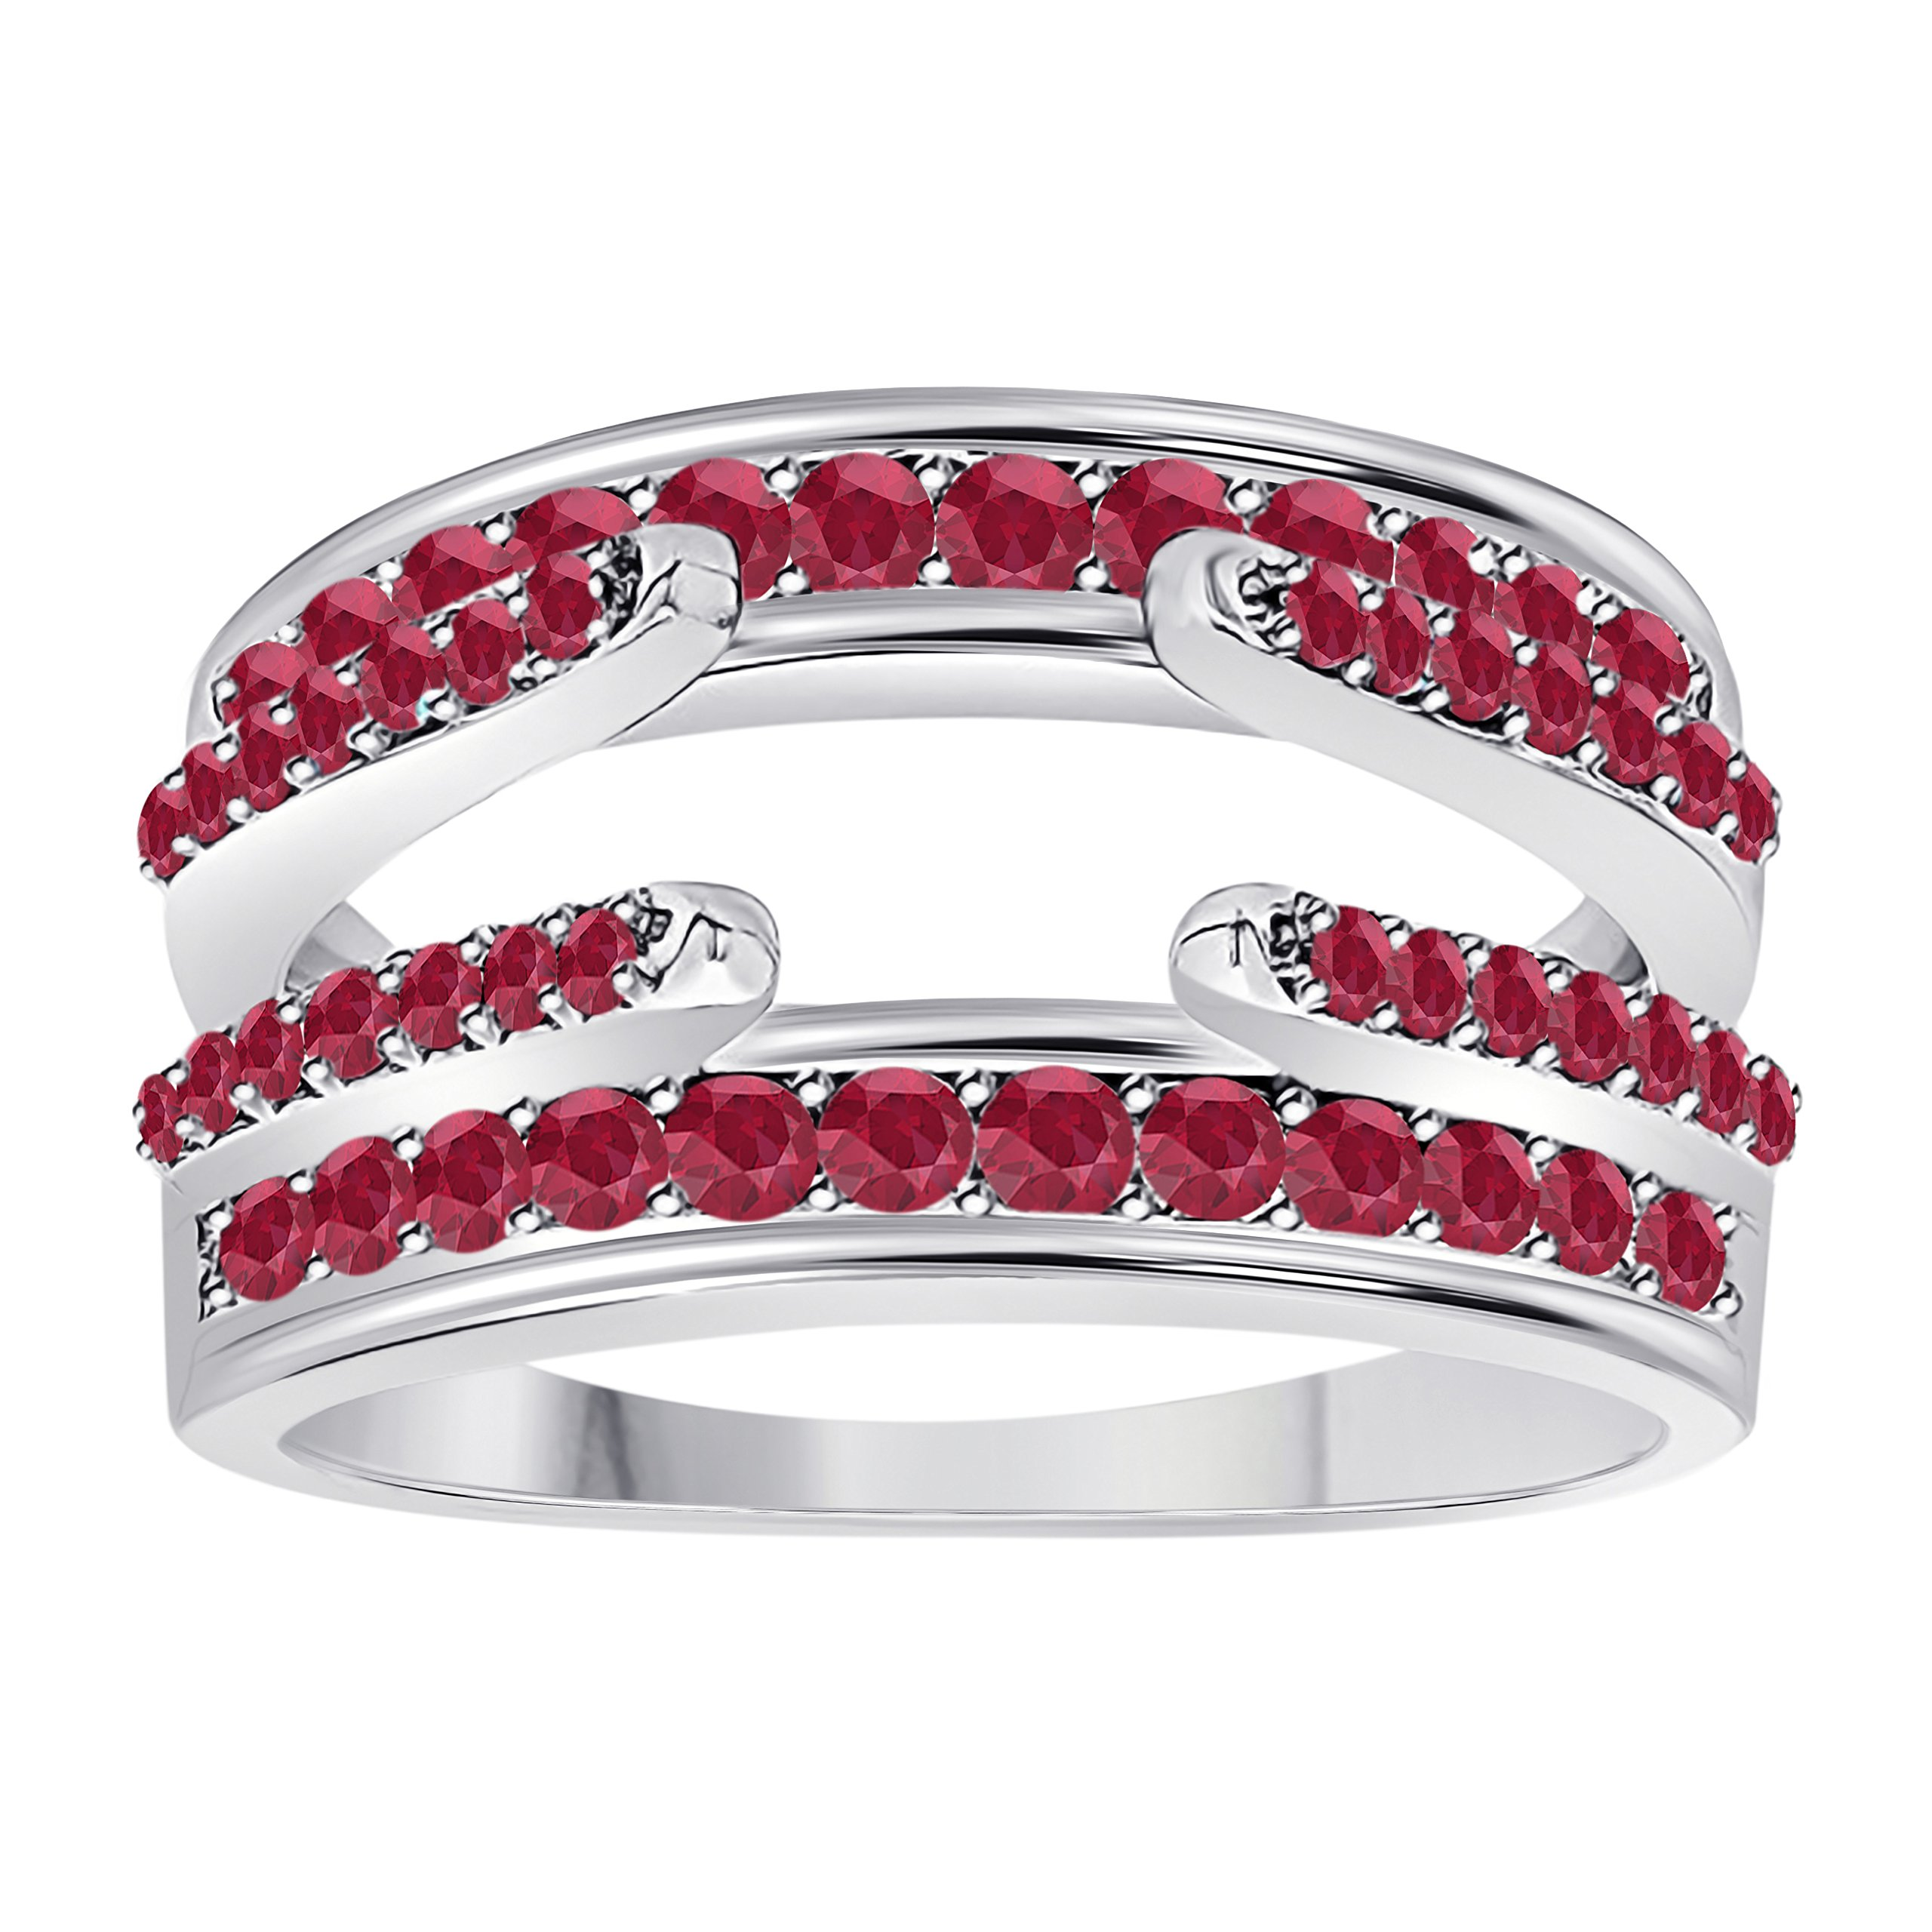 DreamJewels .925 Sterling Silver Combination Curved Style Cathedral Wedding Ring Guard Enhancer with CZ Red Ruby (1.10 ct. tw.)